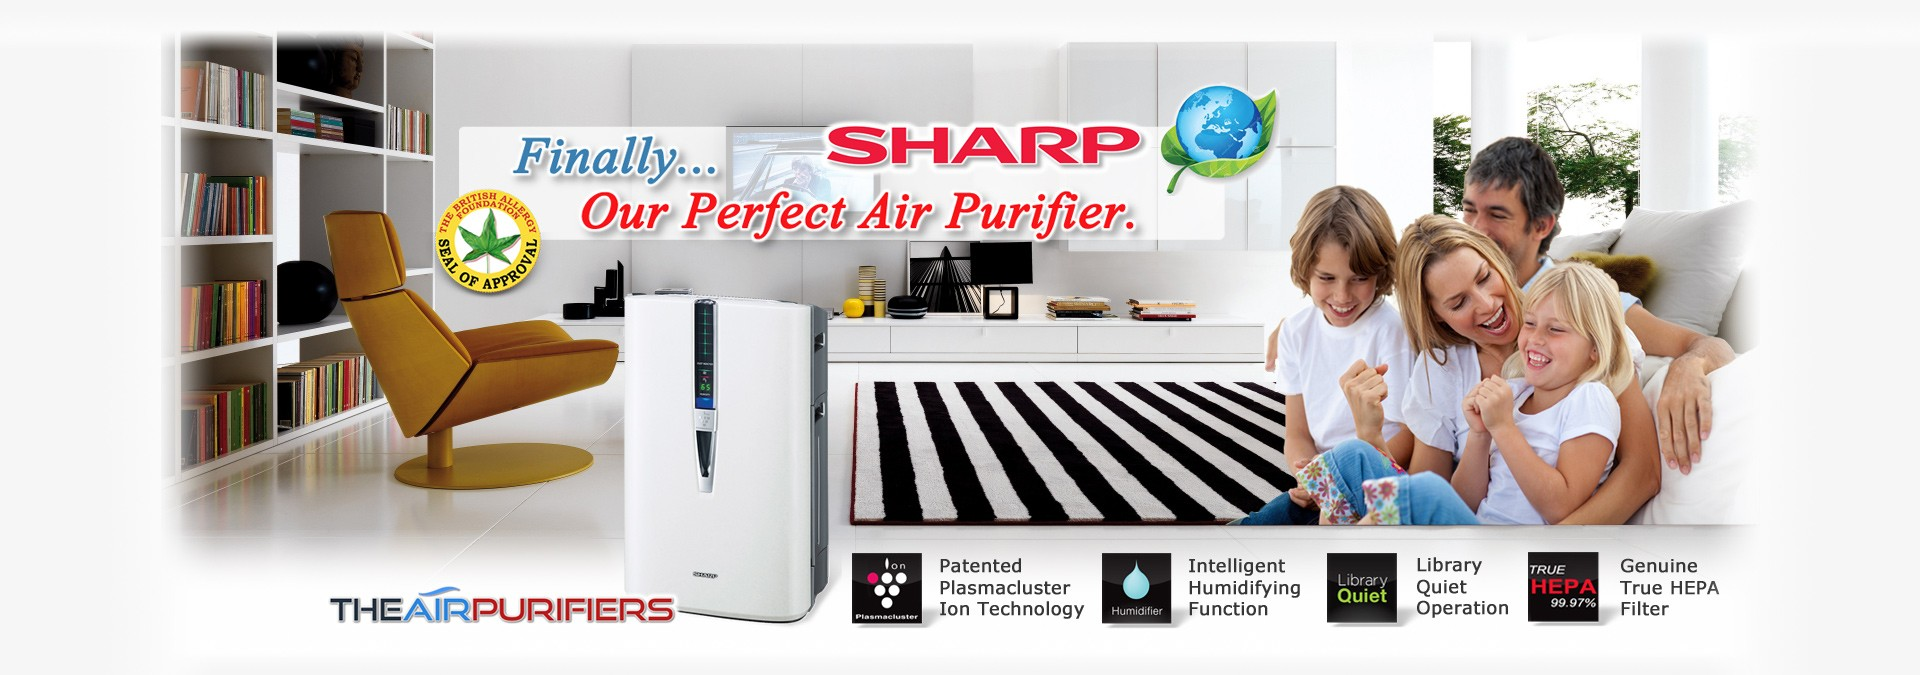 Sharp Plasmaclsuster Ion - World's Most Awarded Air Purifiers